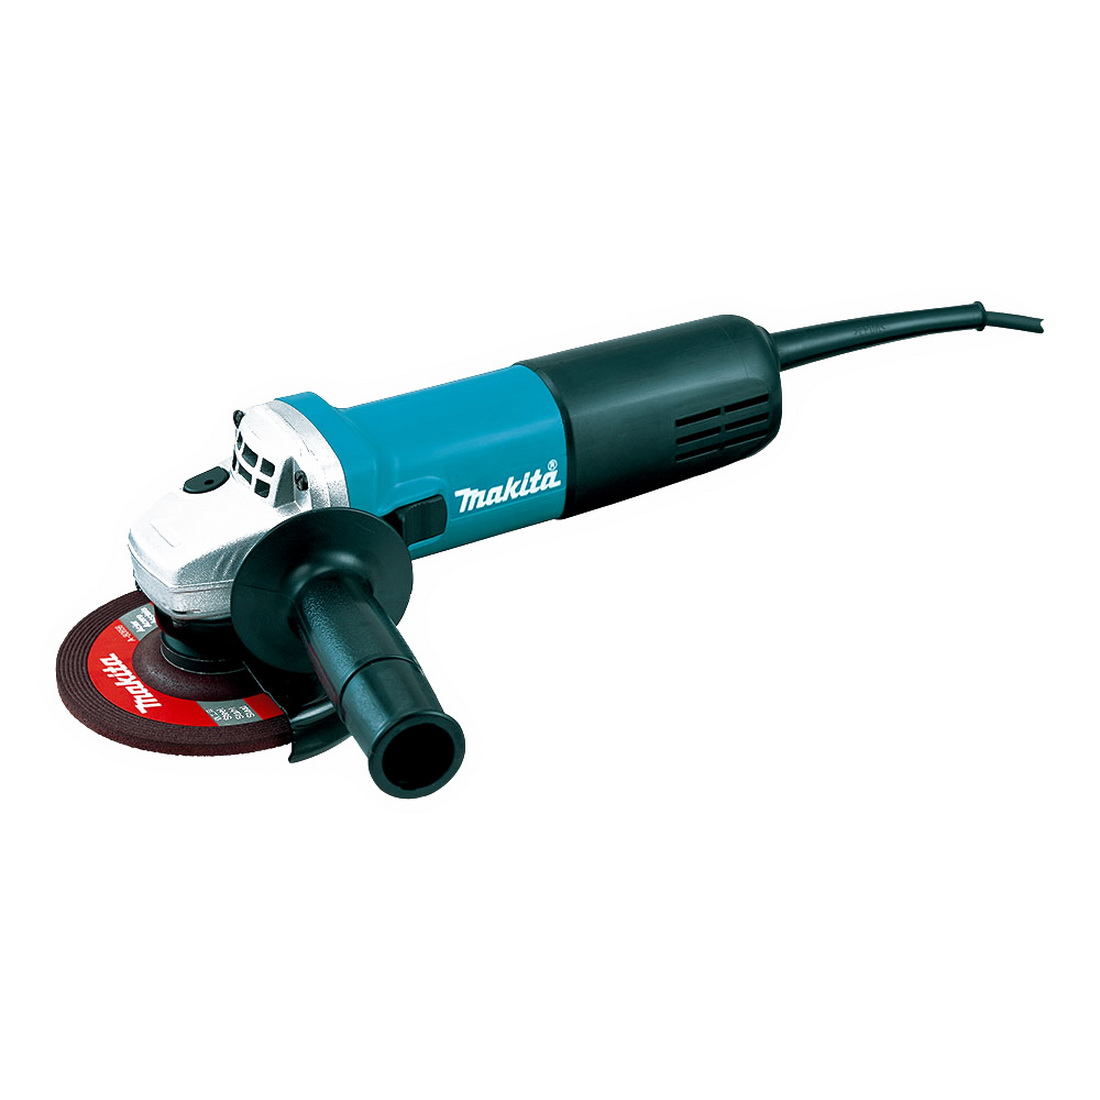 840W 125mm Corded Angle Grinder